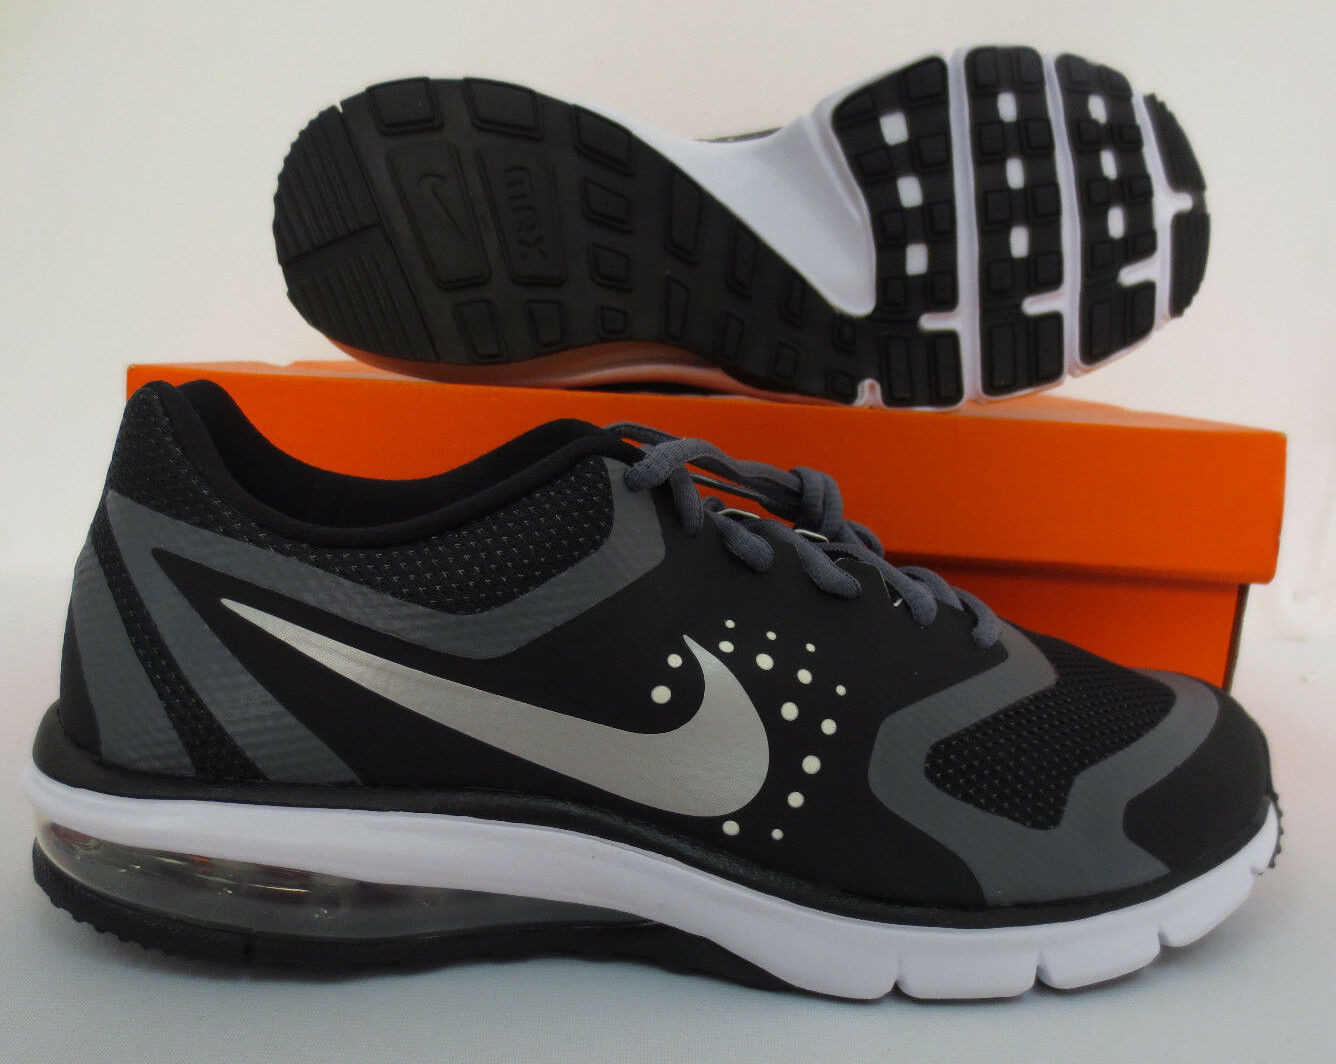 NIKE AIR MAX PREMIERE RUN SHOES MENS RUNNING WALKING GYM WORKOUT NEW 789575 001